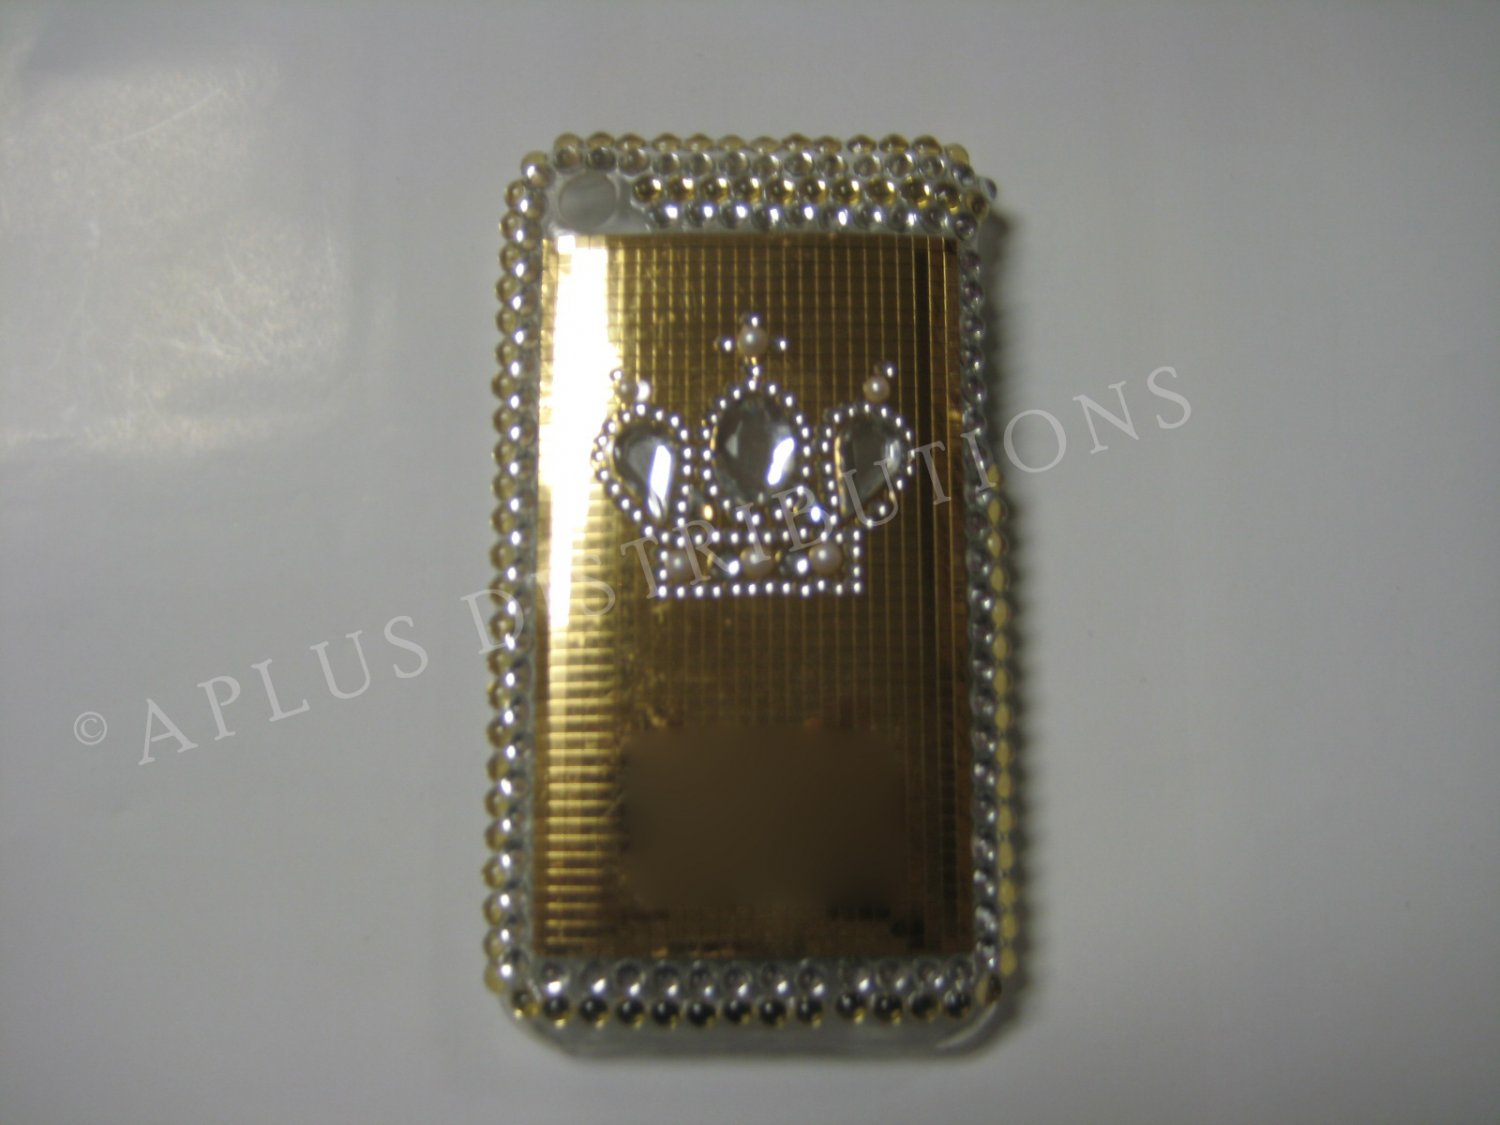 New Gold Crown On Squares Design Crystal Bling Diamond Case For iPhone 3G 3Gs - (0112)